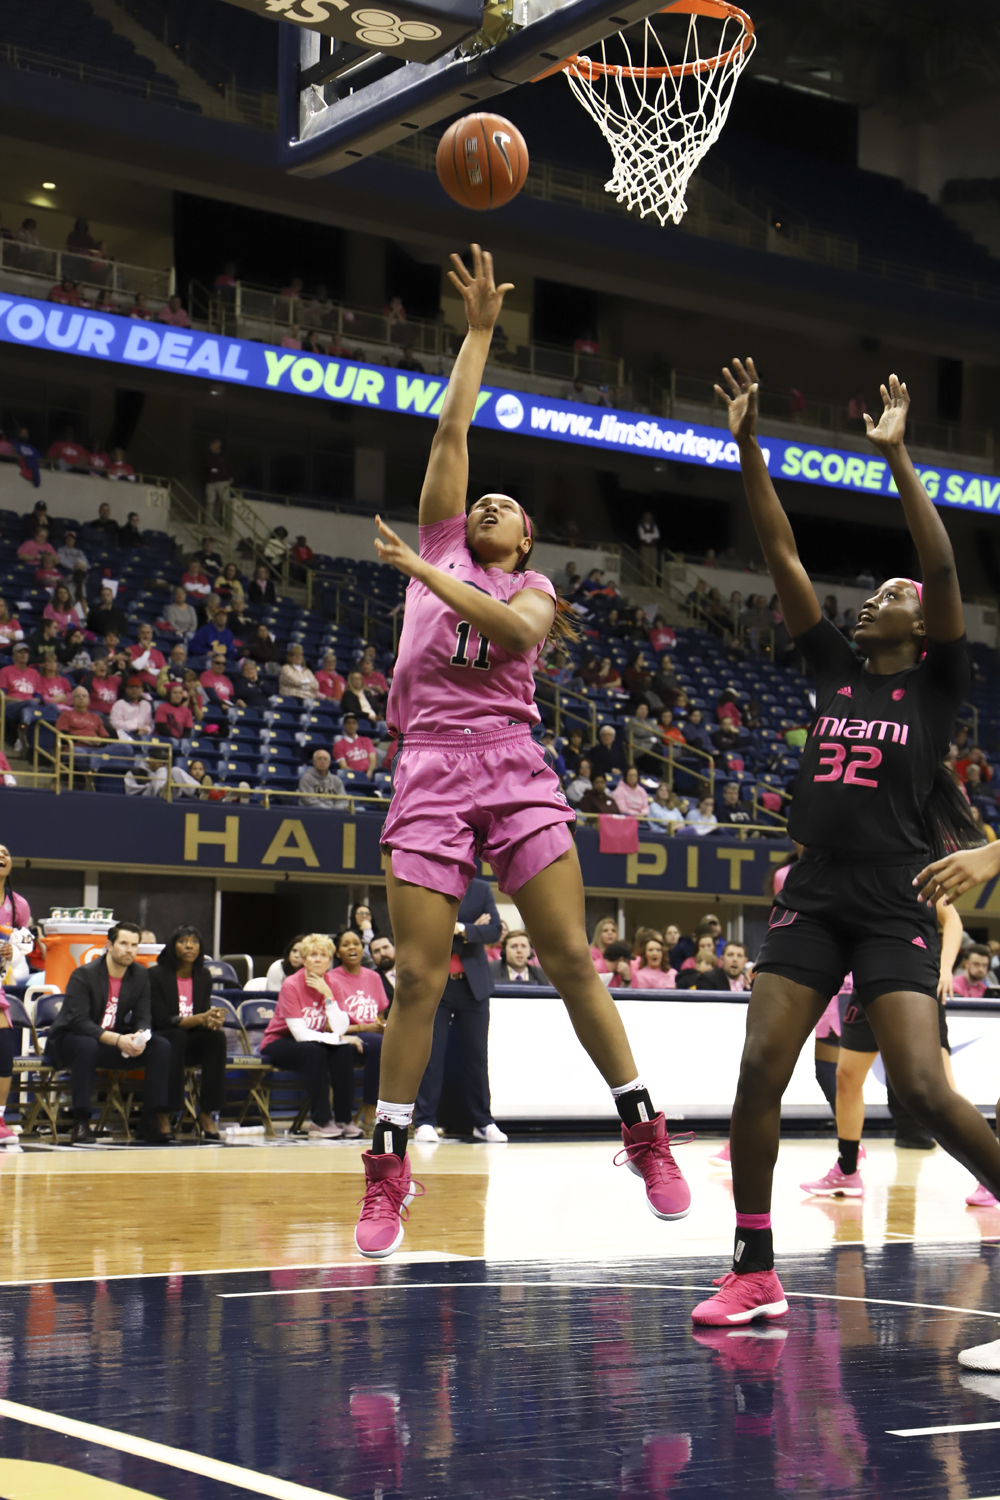 Sophomore center Cara Judkins (11) attempts a layup during Sunday's Pink the Petersen game against Miami.